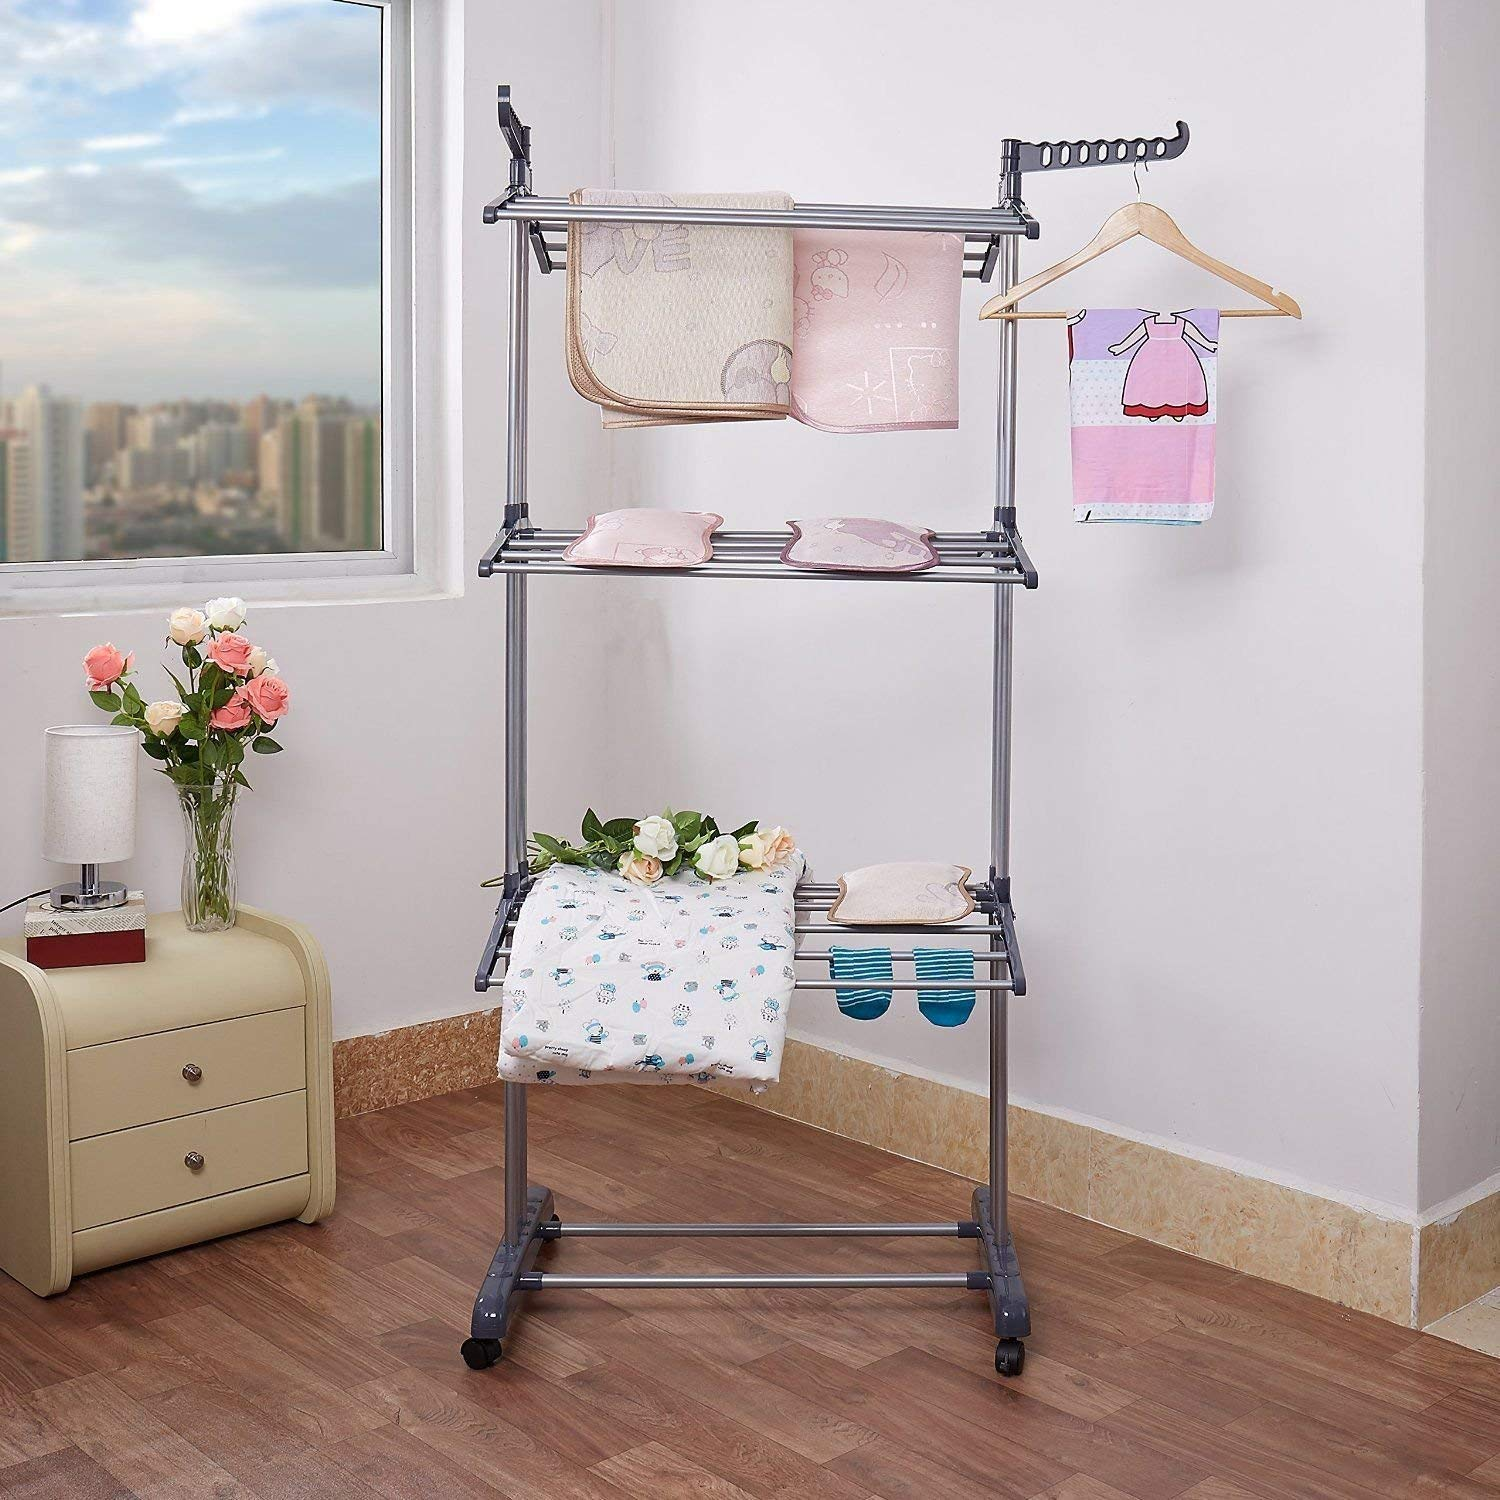 Zerone Laundry Drying Rack Foldable 3 Layer Tier Clothes Airer Hanger Dryer Stand Rack Washing Clothes Folding Horse Airer Indoor Outdoor Laundry Drying Rail Rack Hanger with 2 Hooks and Wheels